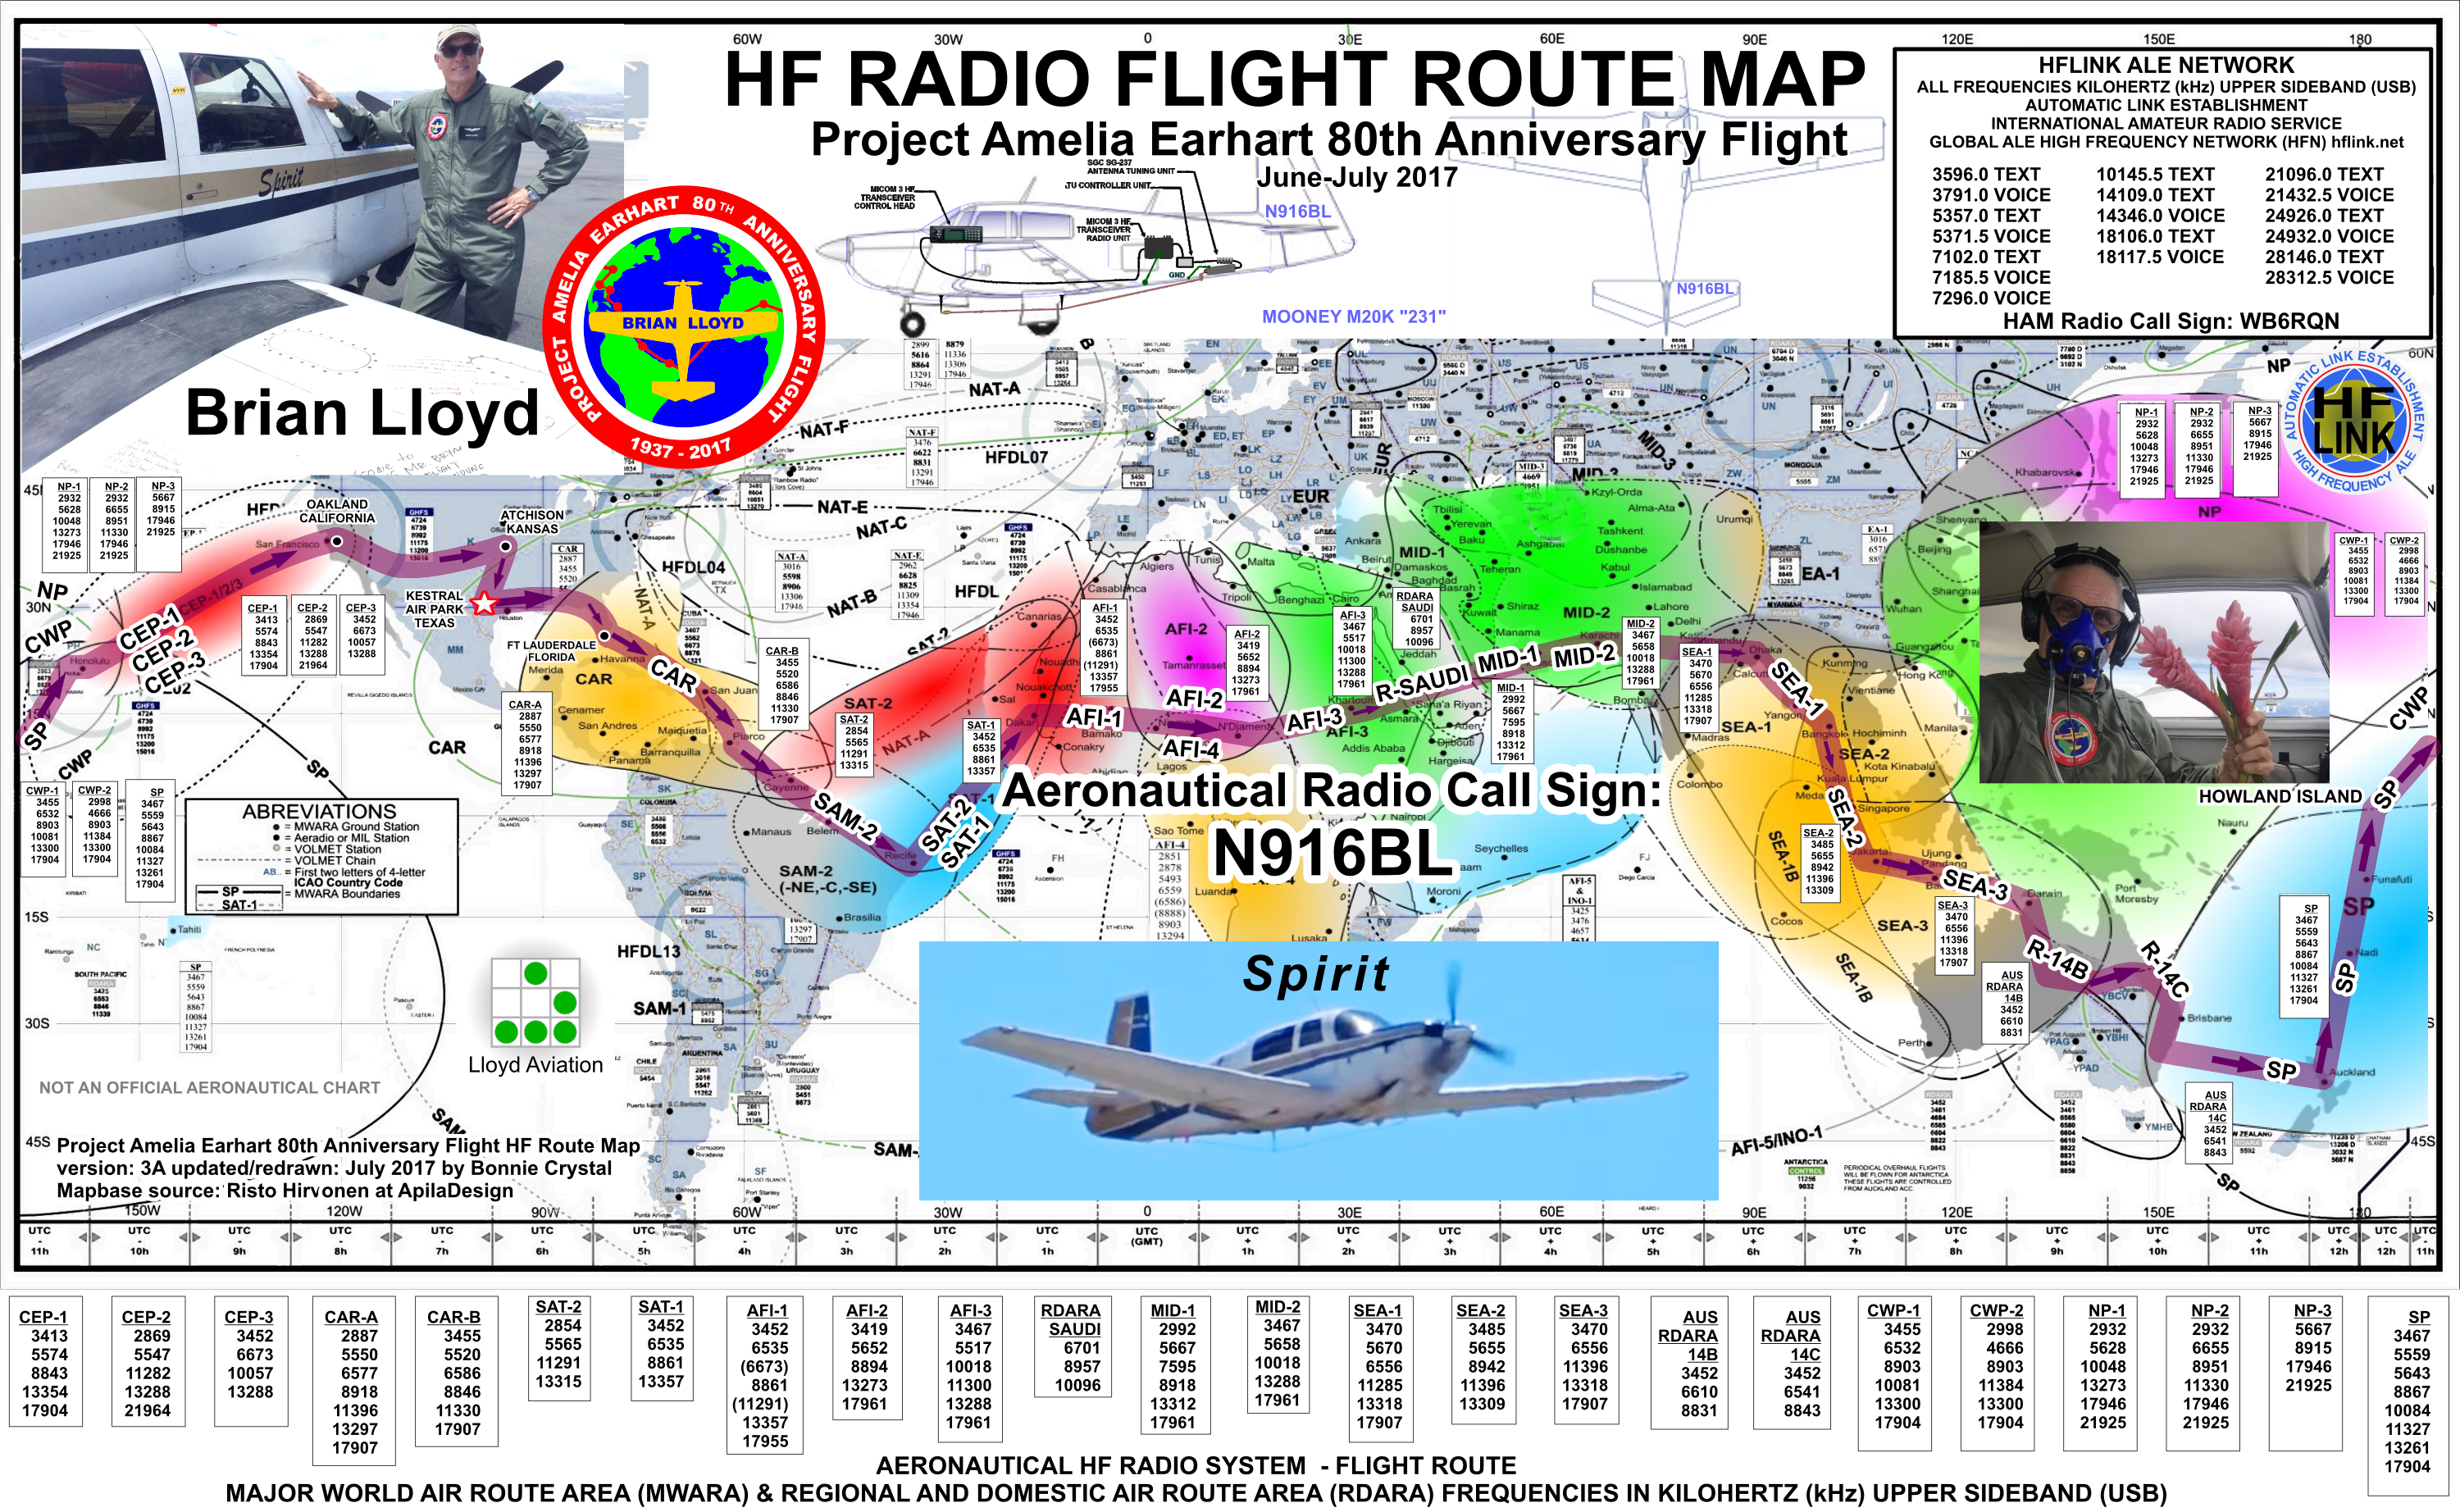 Aeronautical project amelia earhart hf radio flight route map for brian lloyd aircraft n916bl spirit for the 2017 flight retracing gumiabroncs Images